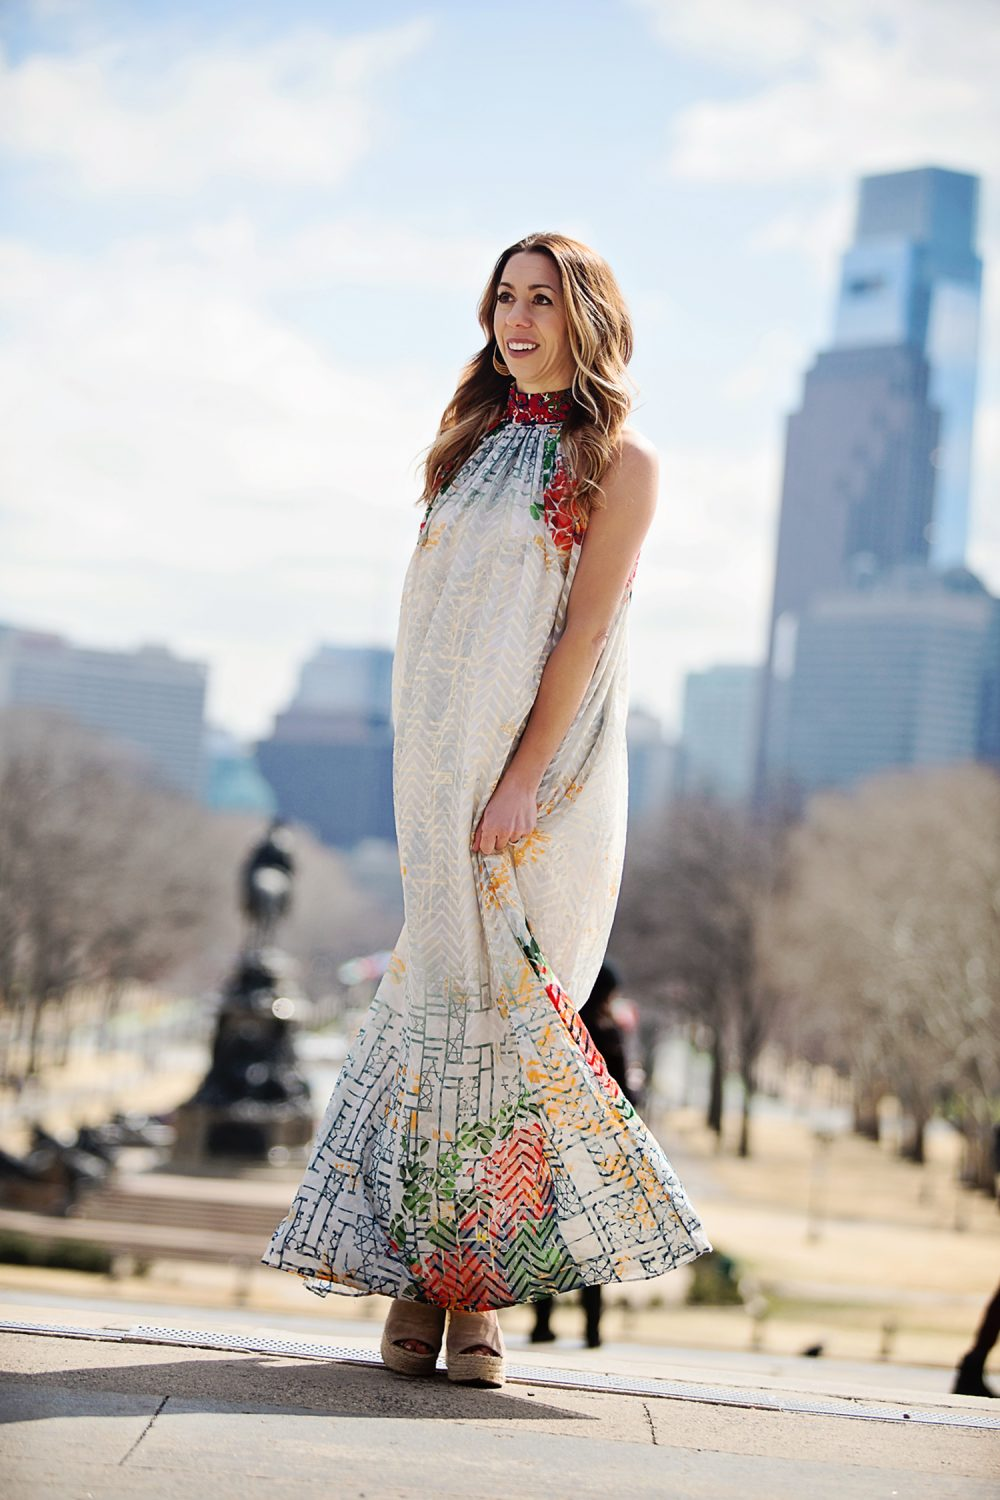 The Motherchic wearing Anthropologie maxi dress